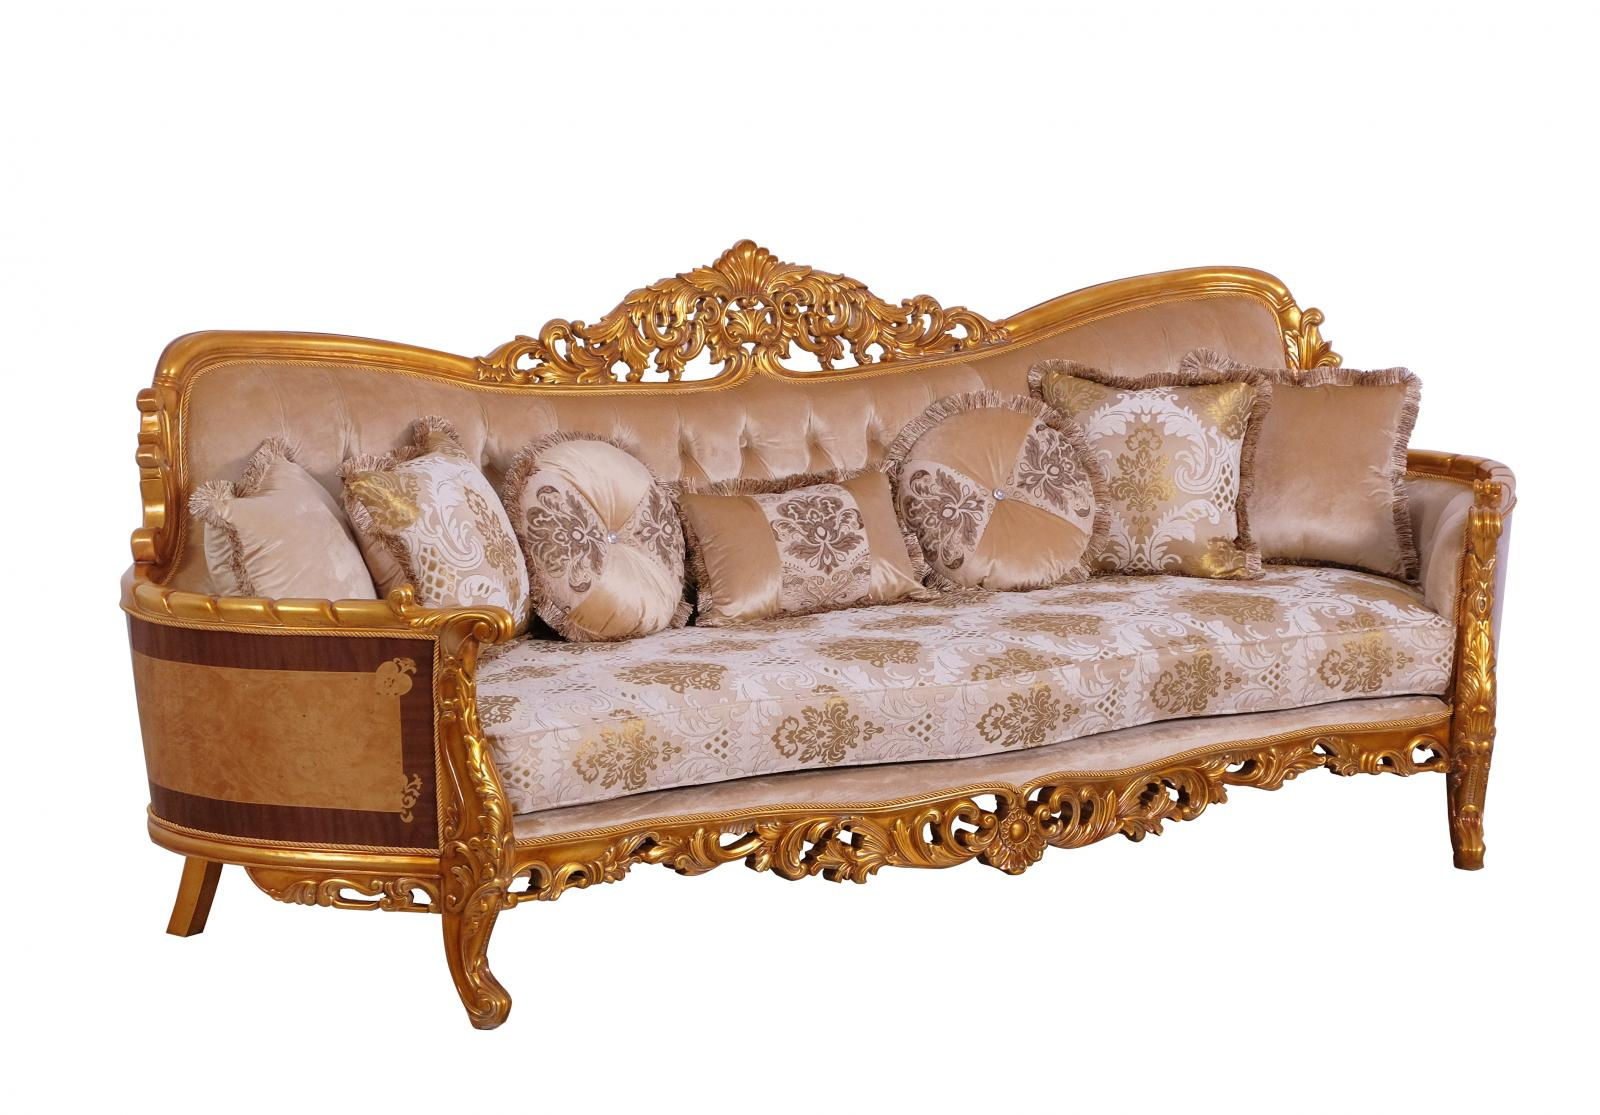 Classic  Traditional Gold  Sand Wood  Solid Hardwood and Fabric Sofa EUROPEAN FURNITURE 31056-S